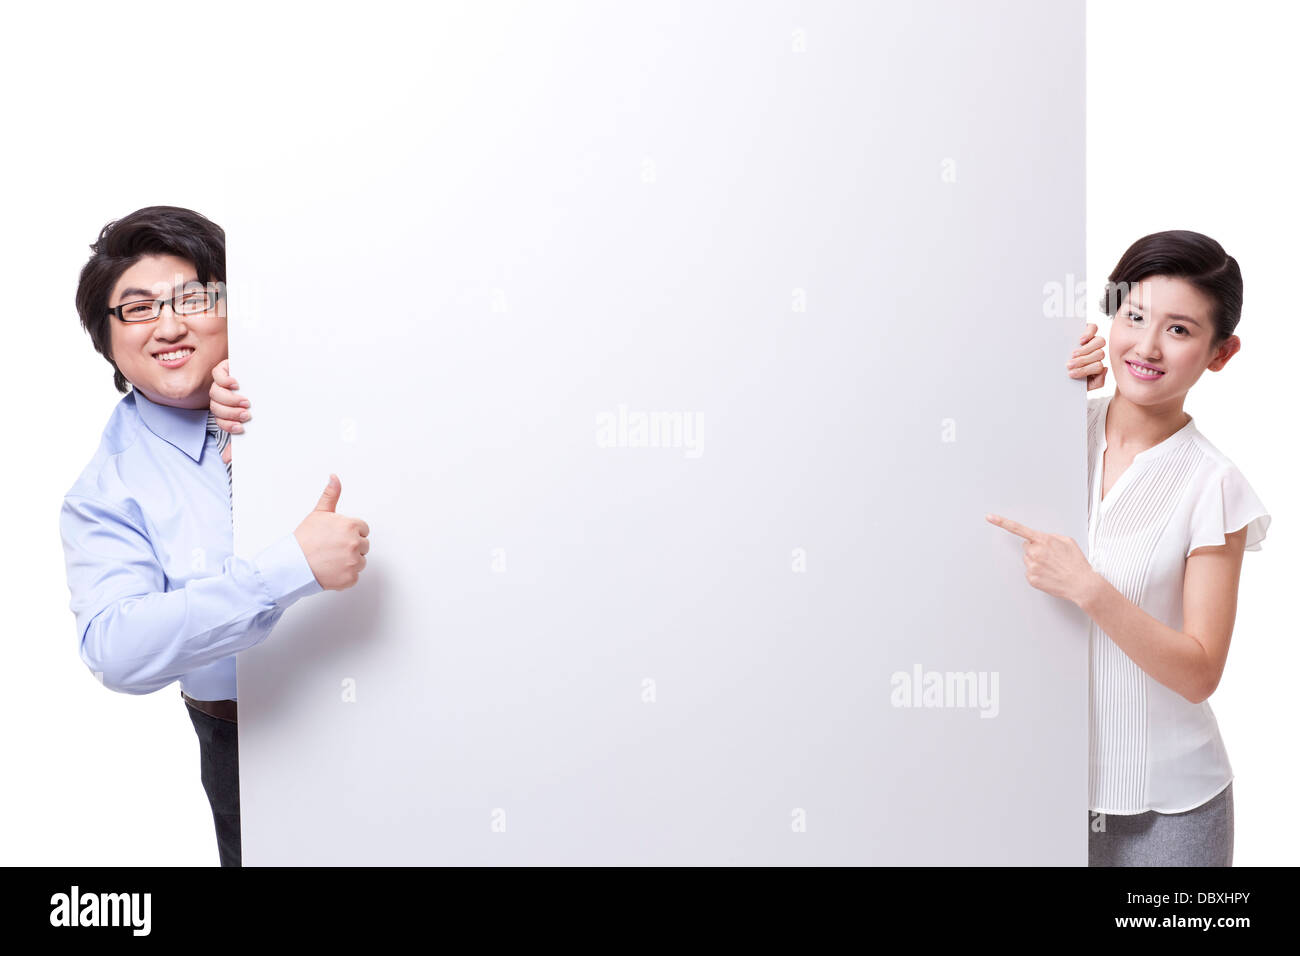 Cheerful business partner with whiteboard - Stock Image